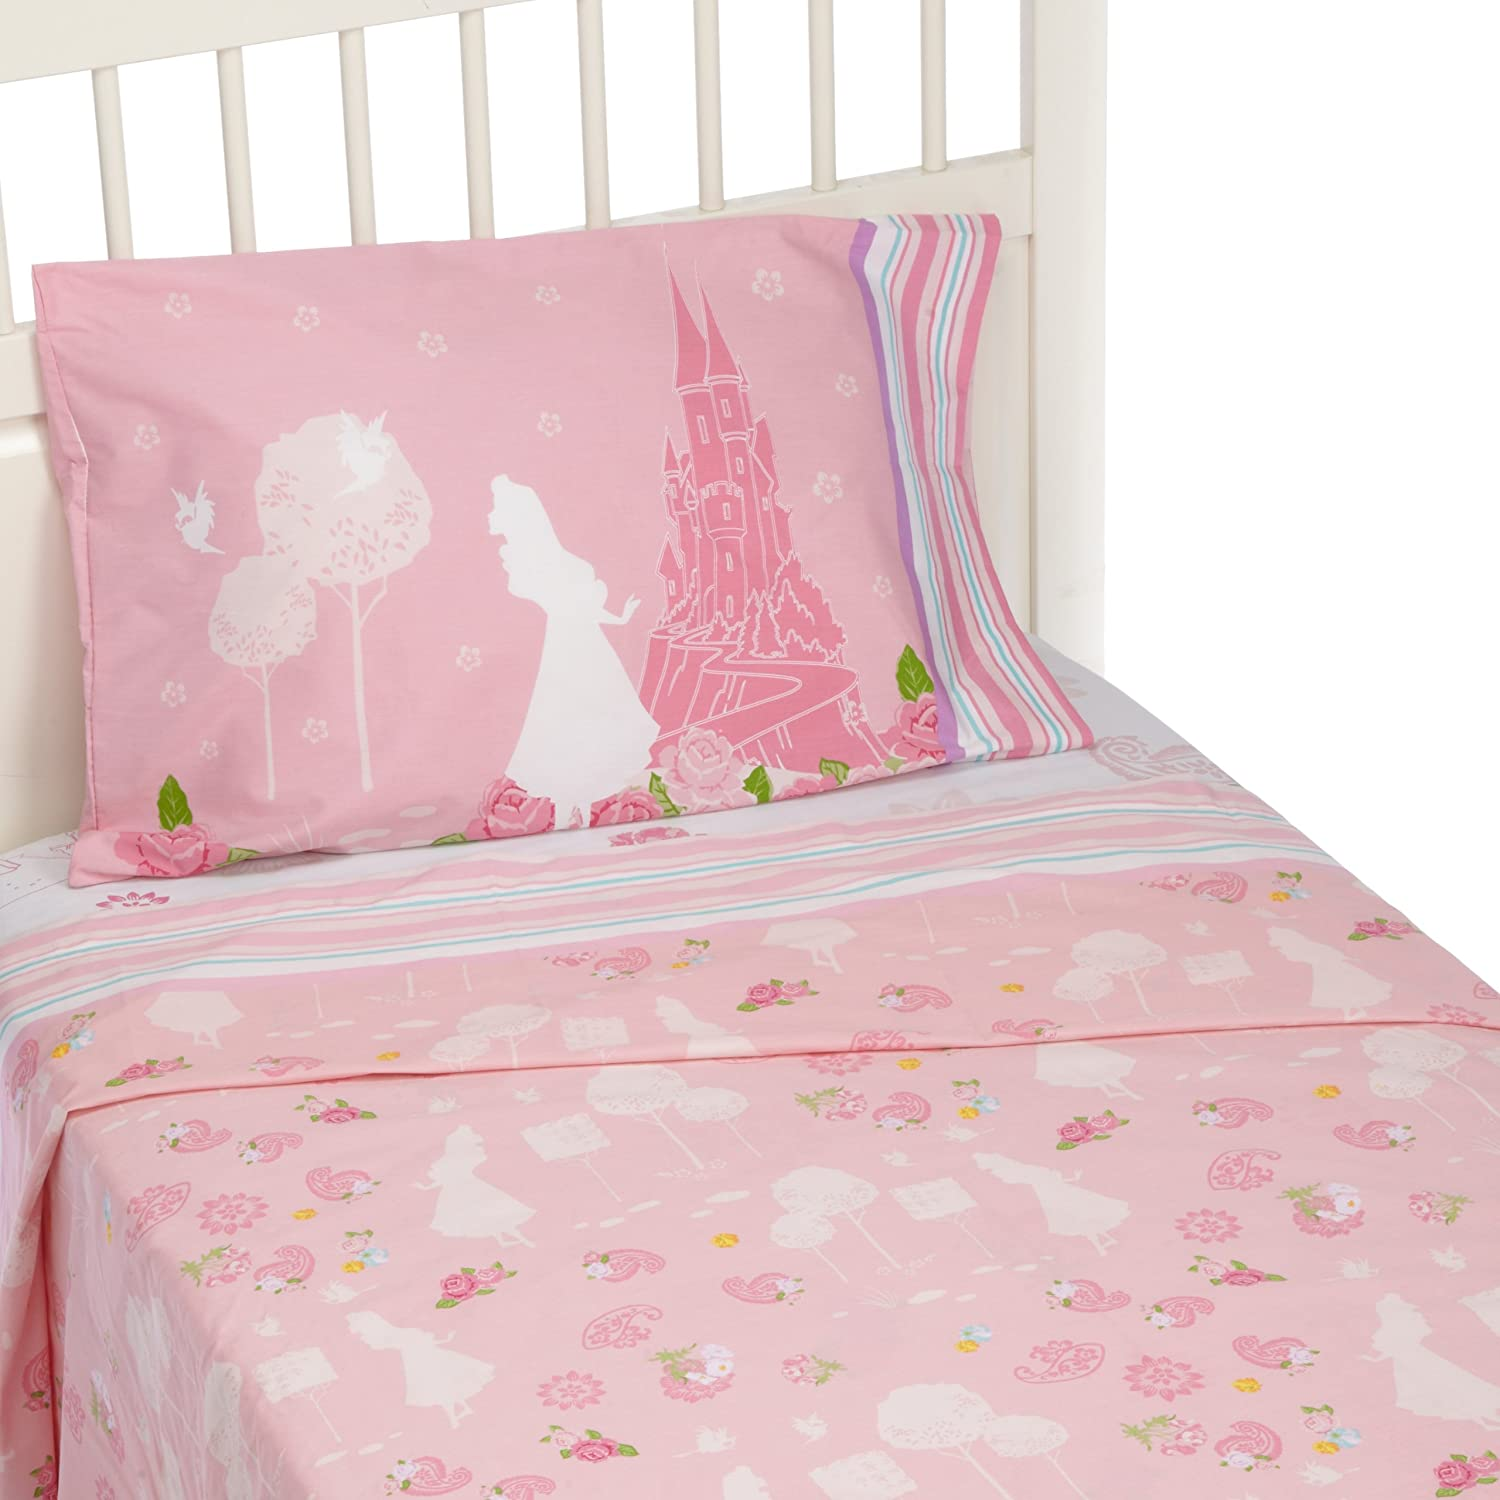 girls kids bedding